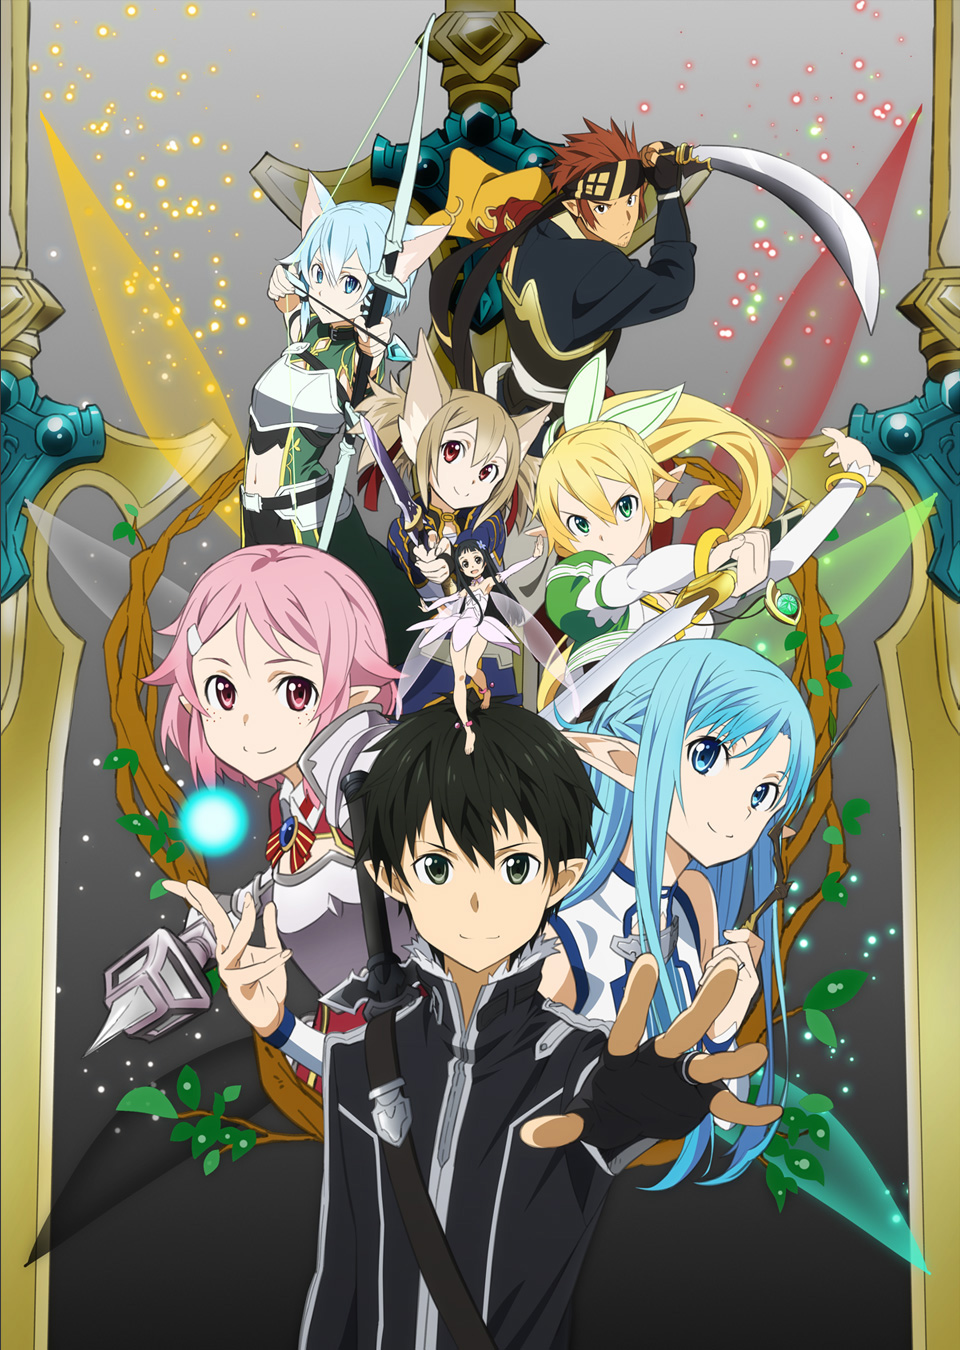 Sao Iphone Wallpaper Posted By Christopher Thompson